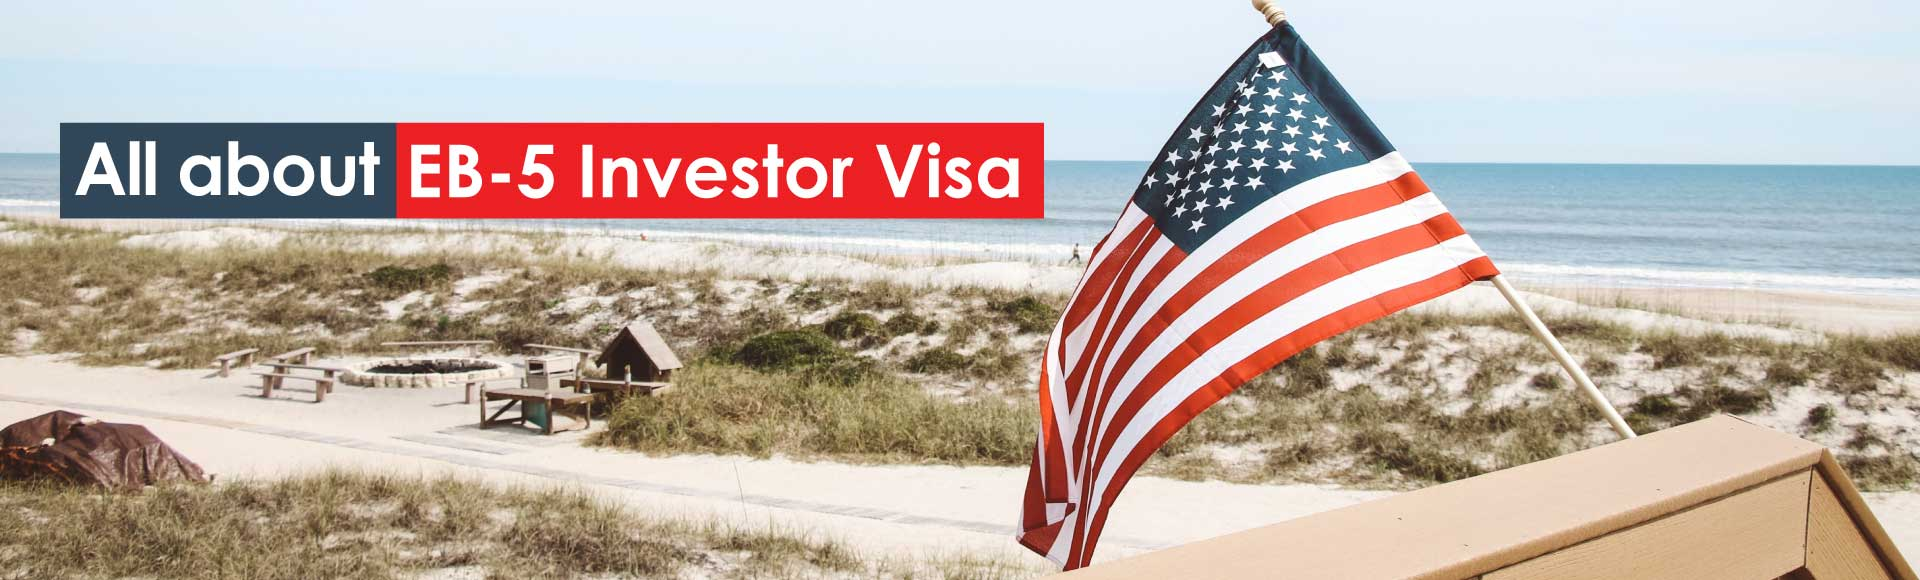 All about EB-5 Investor Visa